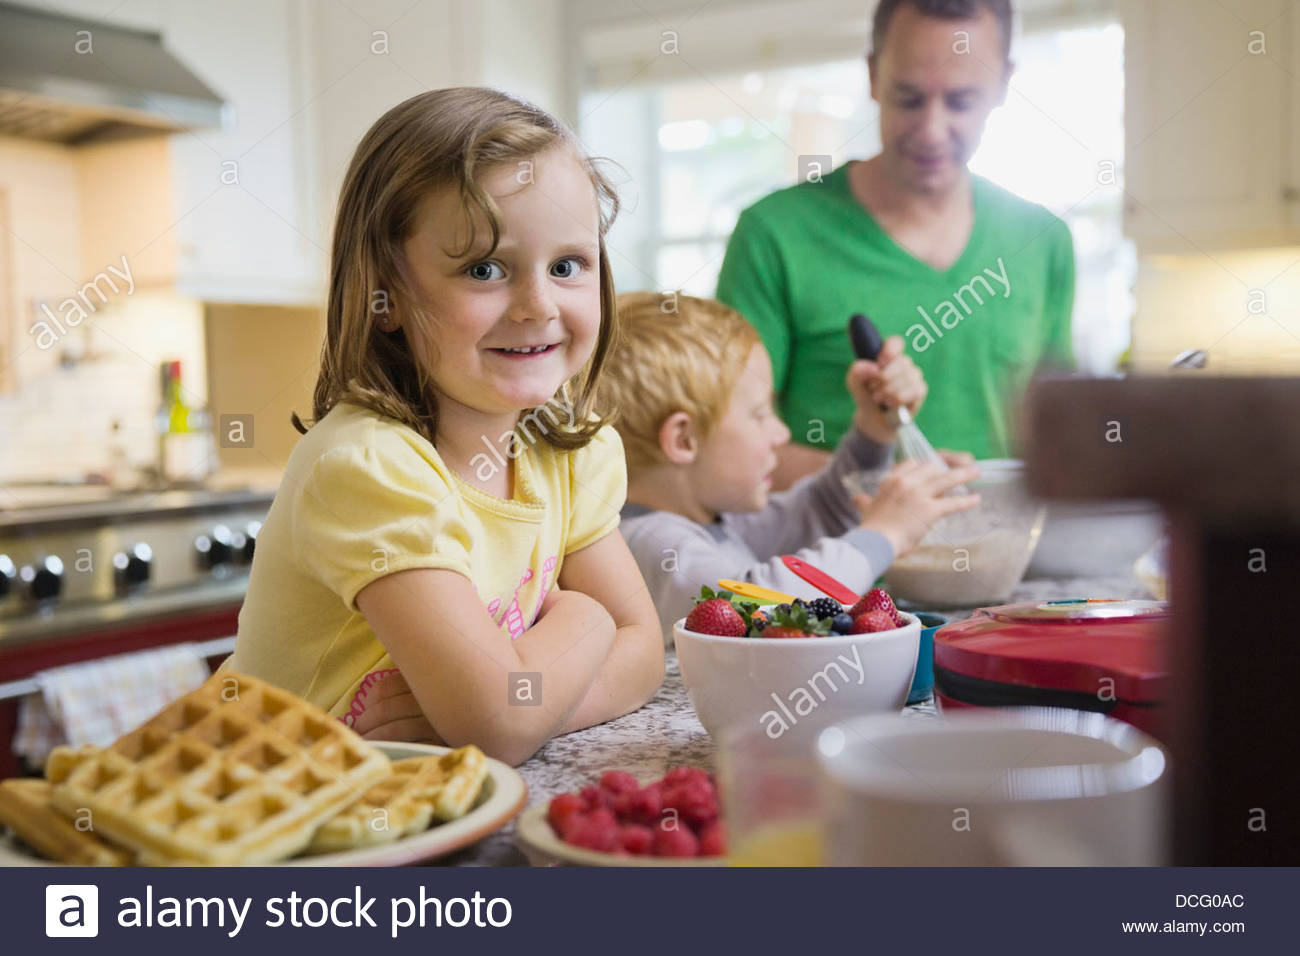 Portrait of girl making breakfast with family - Stock Image